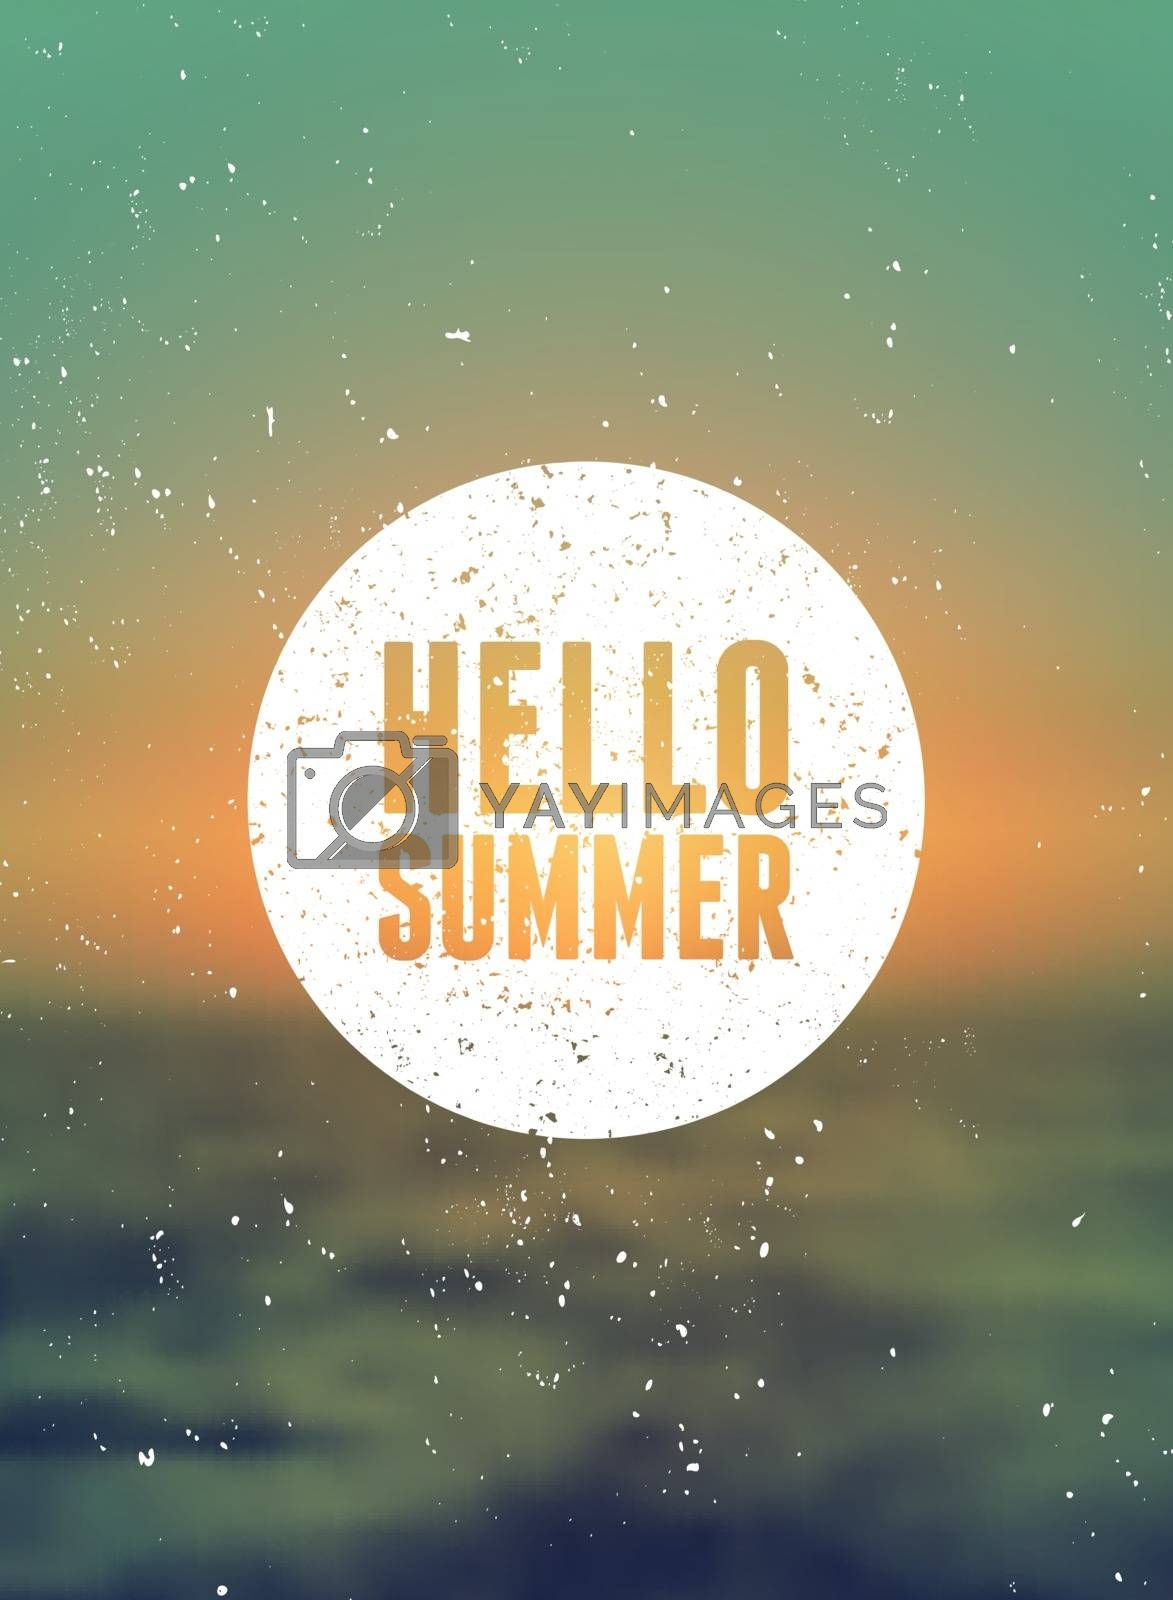 """Hello Summer"" typographic design on a blurred summer background. EPS 10 file, gradient mesh and transparency effects used."